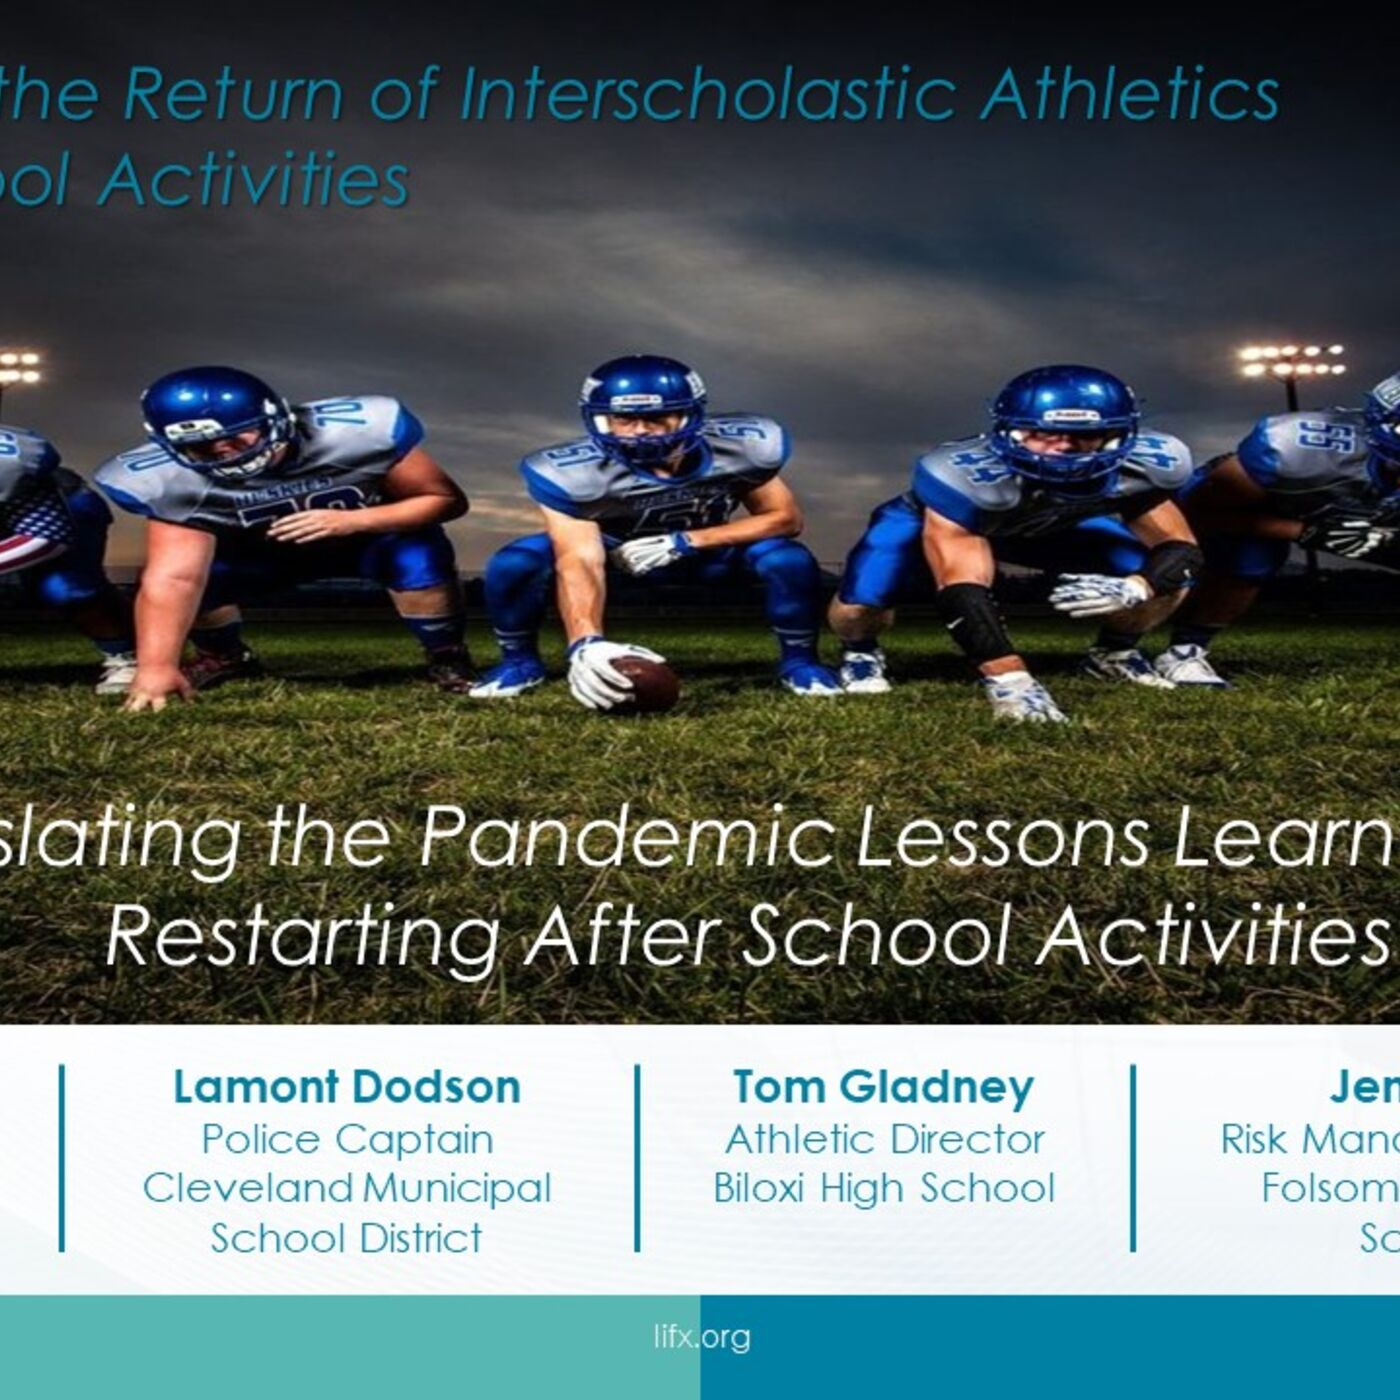 Session 2 - Translating the Pandemic Lessons Learned into Restarting After School Activities